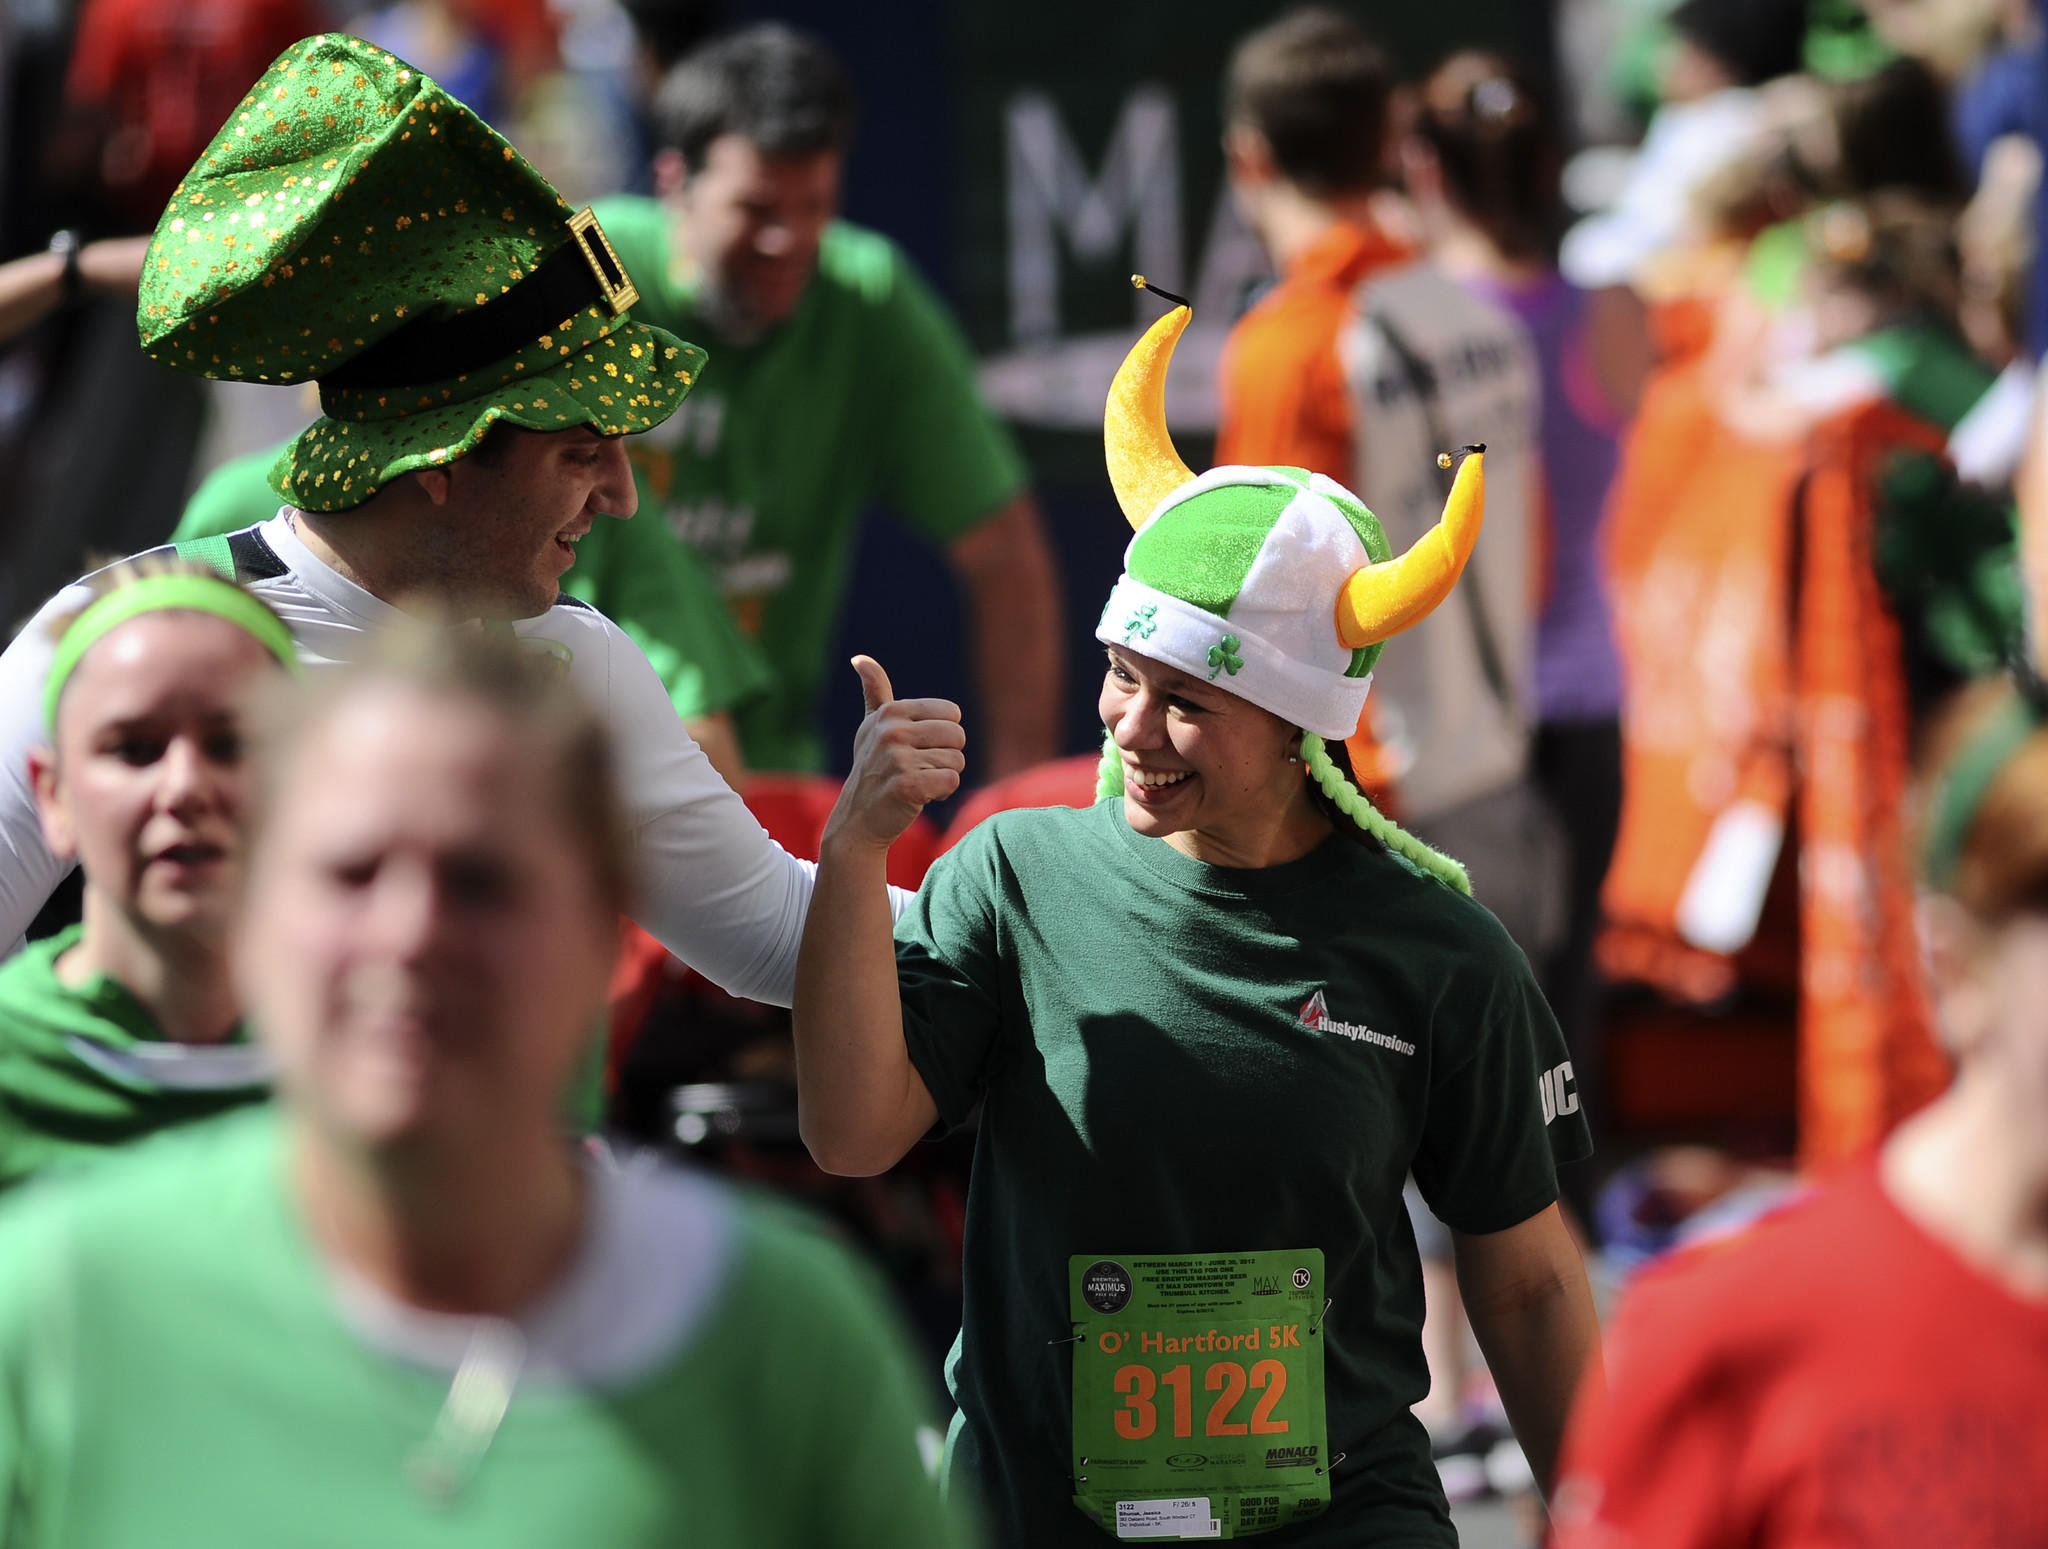 Everyone is Irish at the Max's O'Hartford 5K.